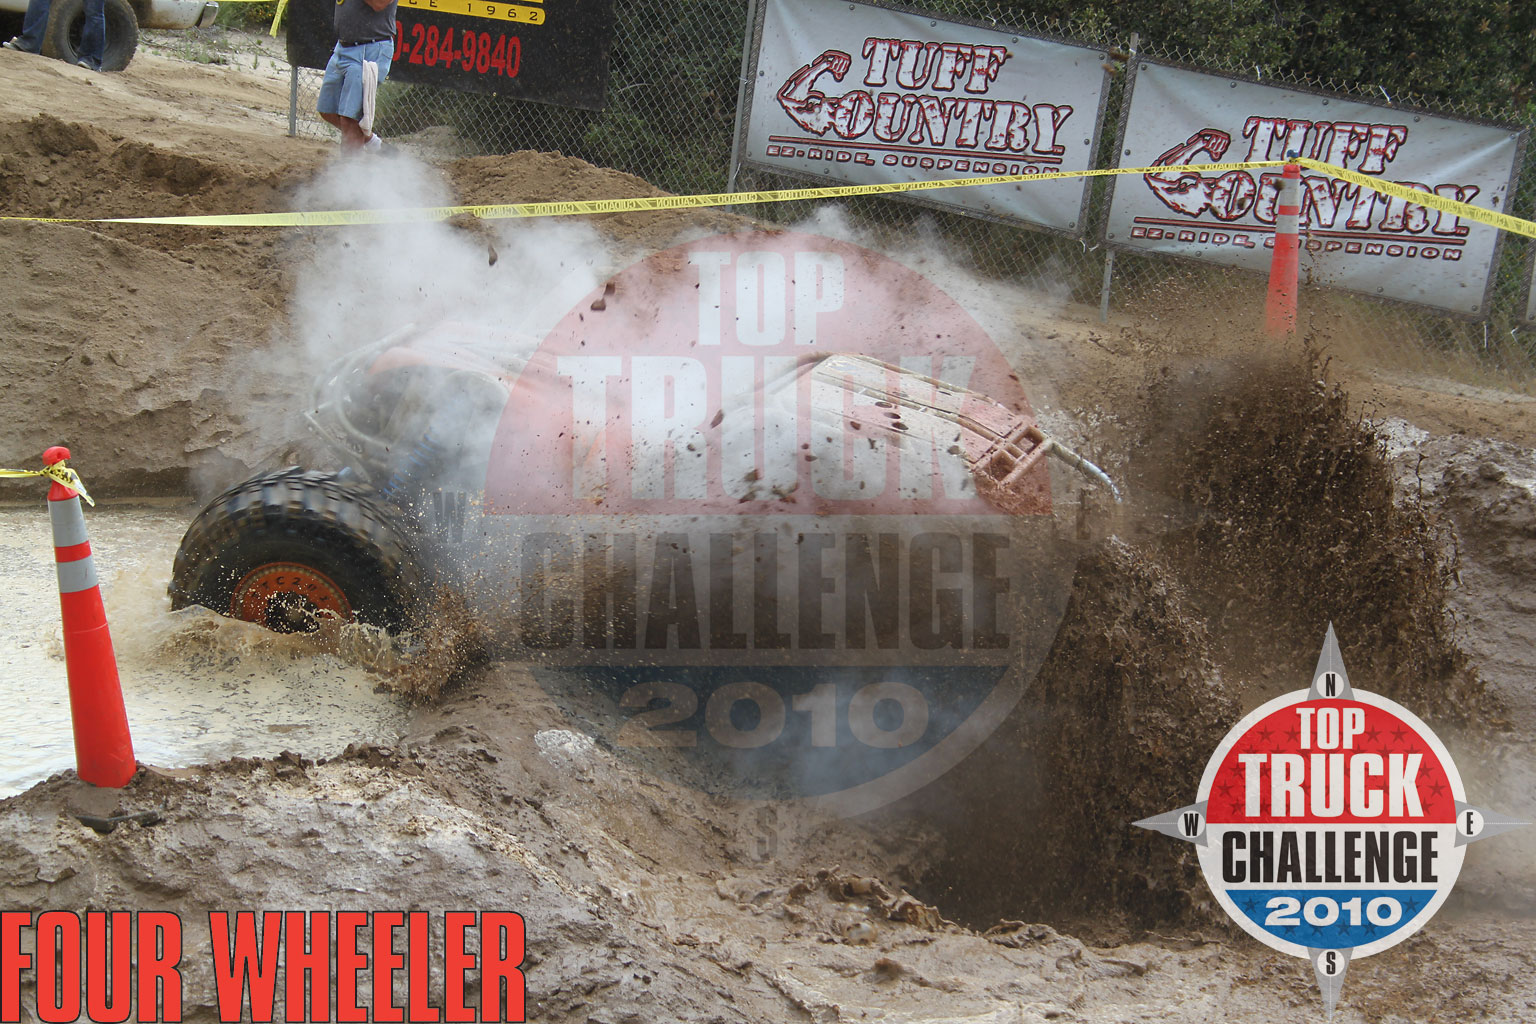 2010 Top Truck Challenge Obstacle Course Leo Kuether 2007 Cole Works Fat Girl Buggy